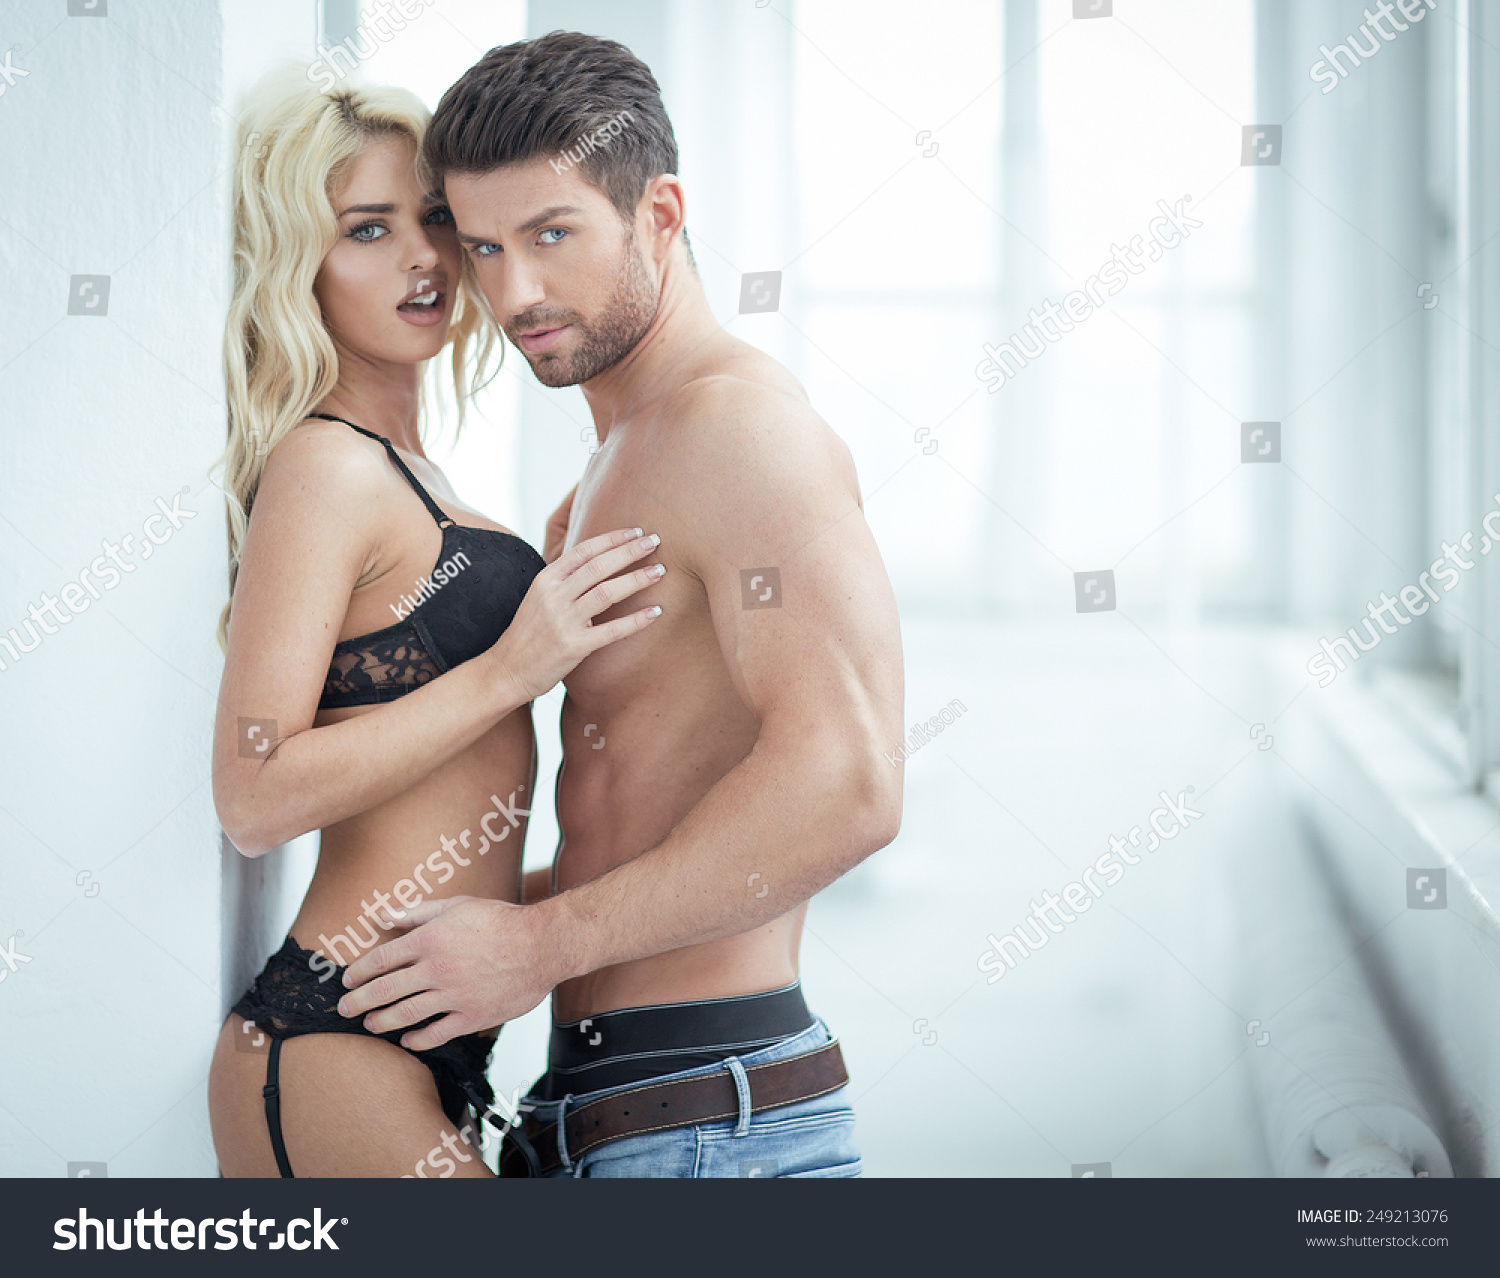 Pics of sexy couple for free will